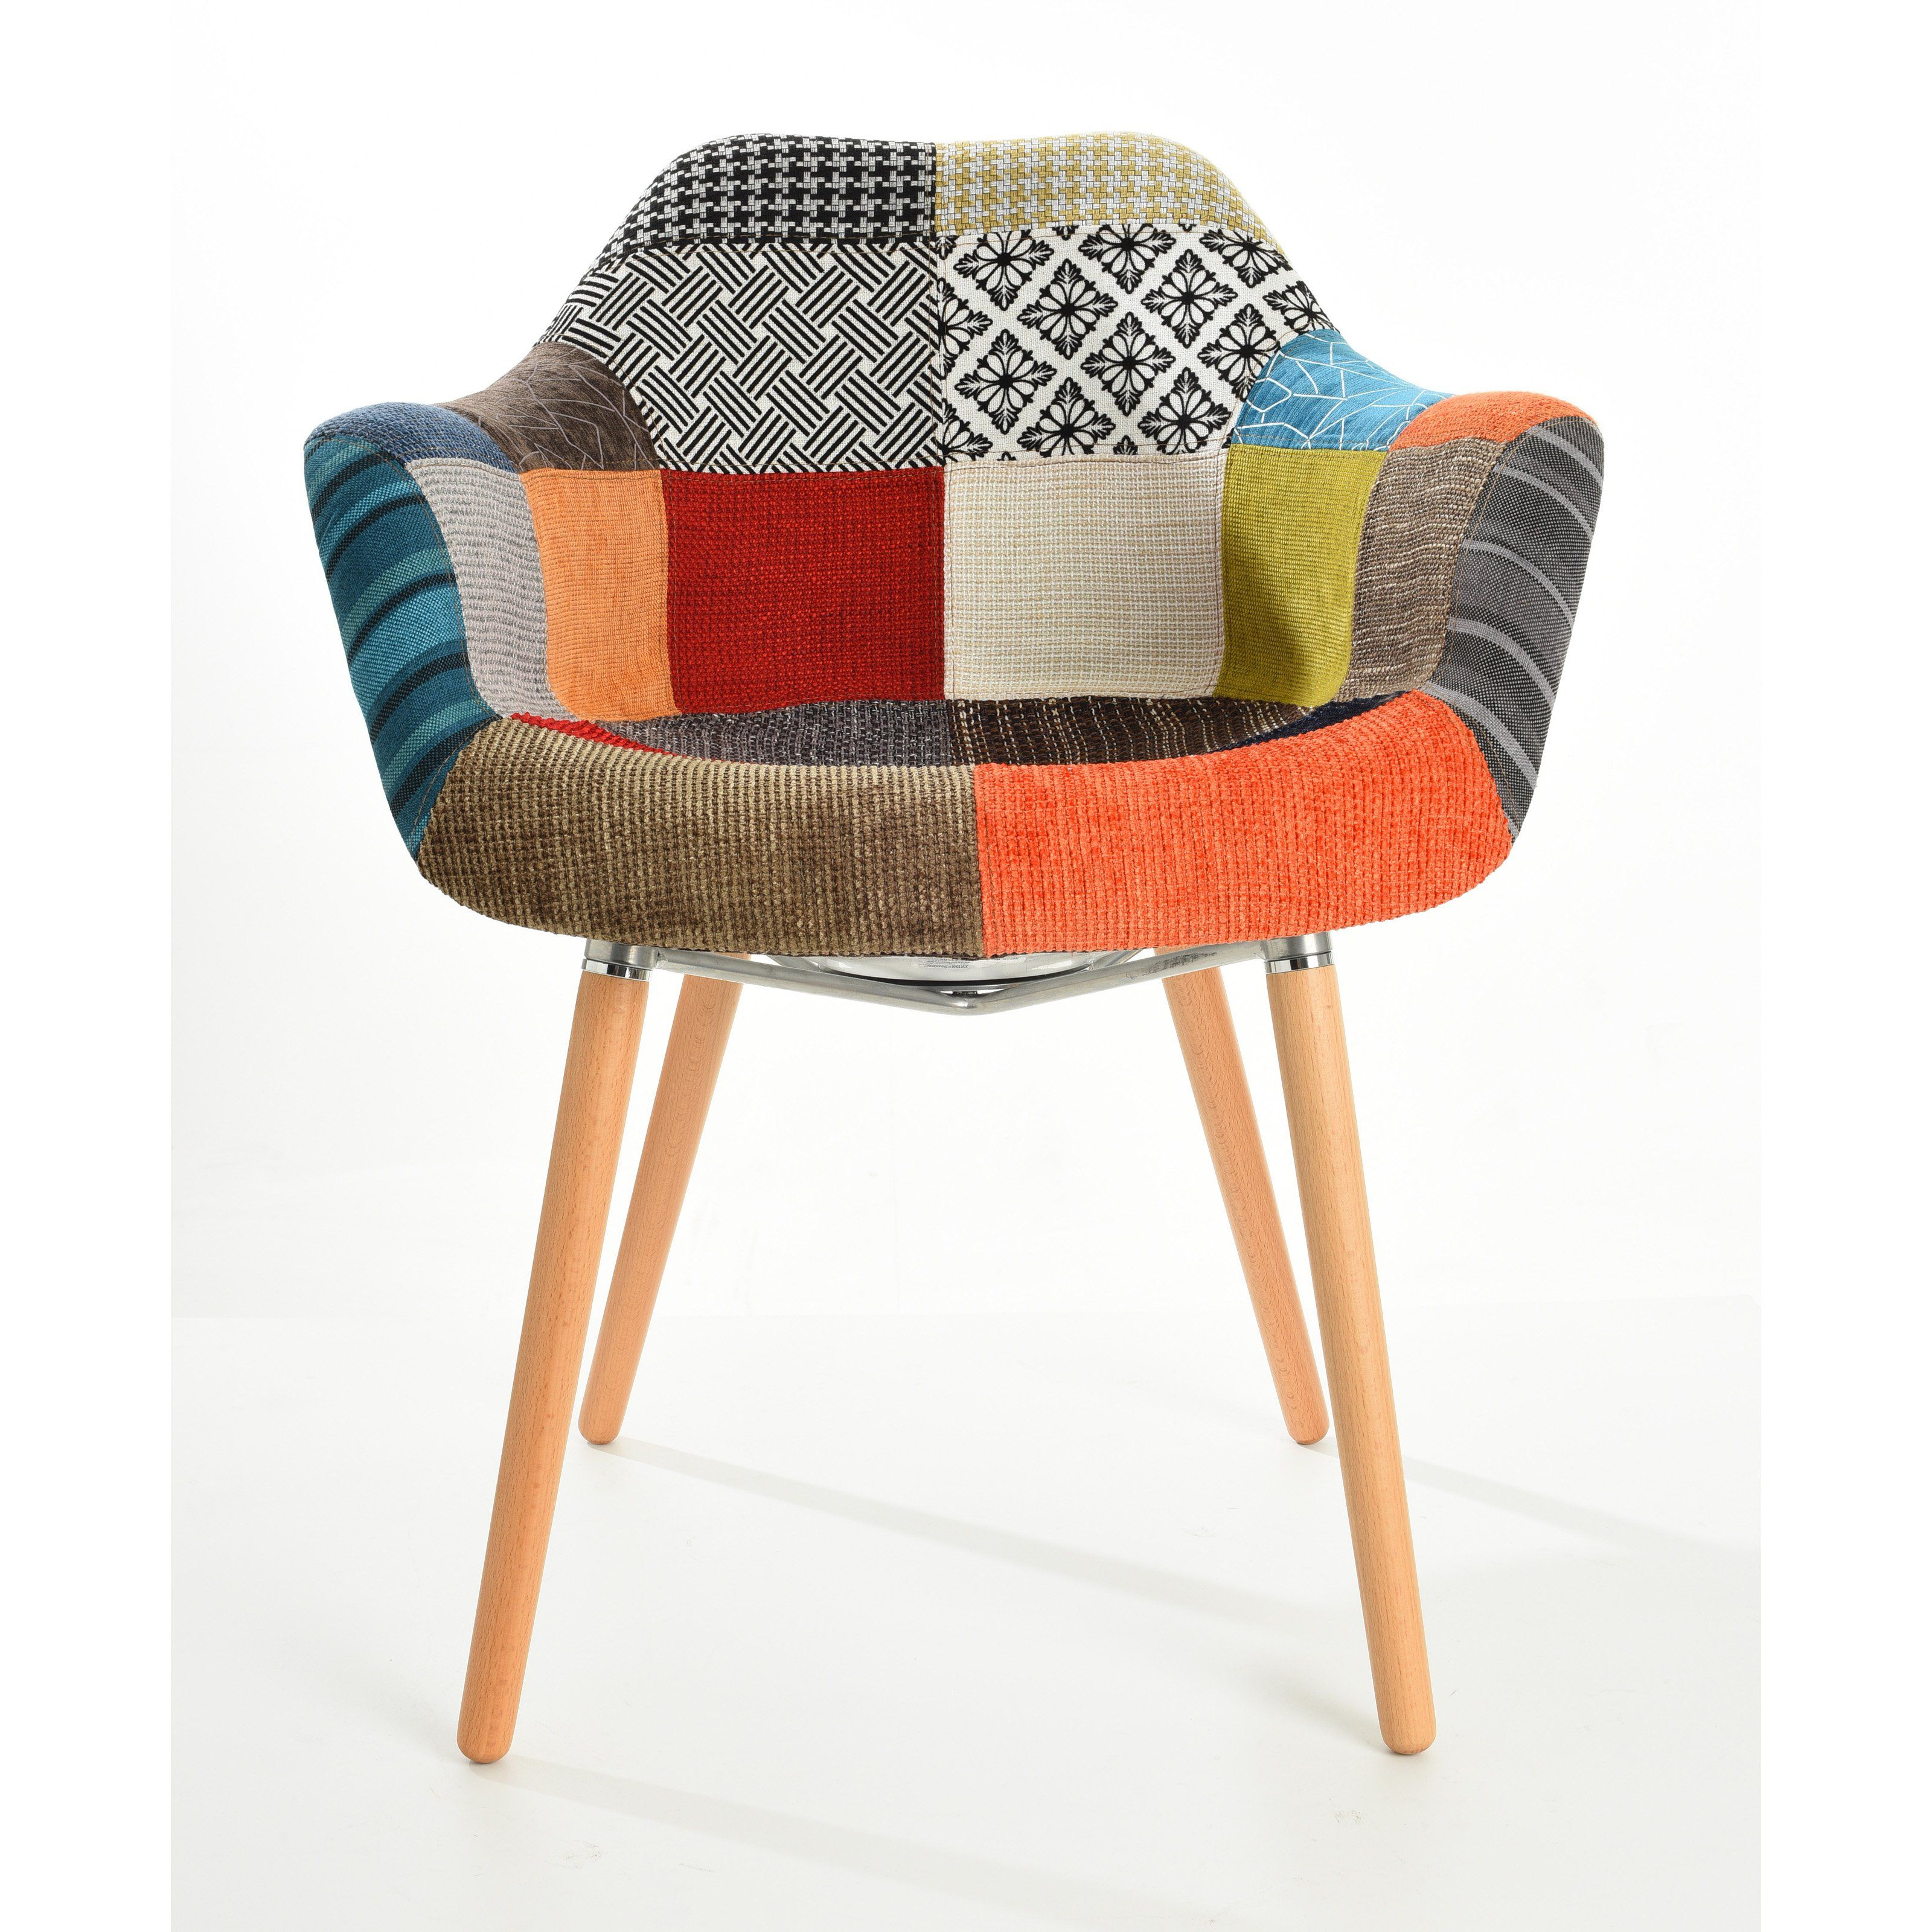 Mochi Patchwork Accent Arm Chair Set of 2 from